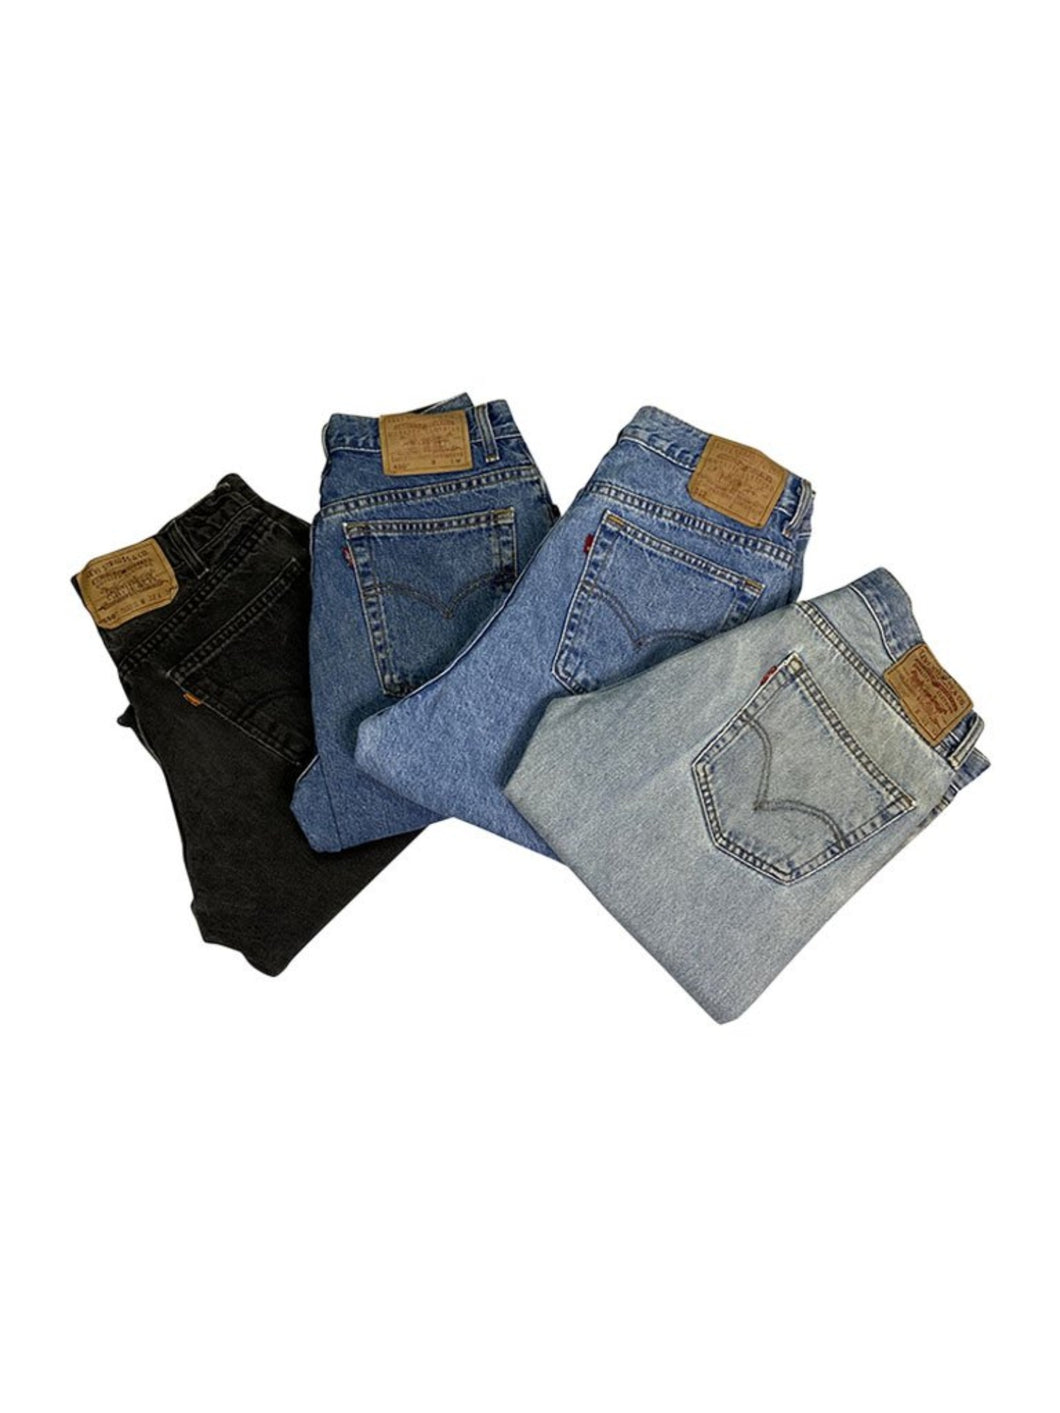 An image of four different pairs of men's vintage denim jeans from Levi Straus